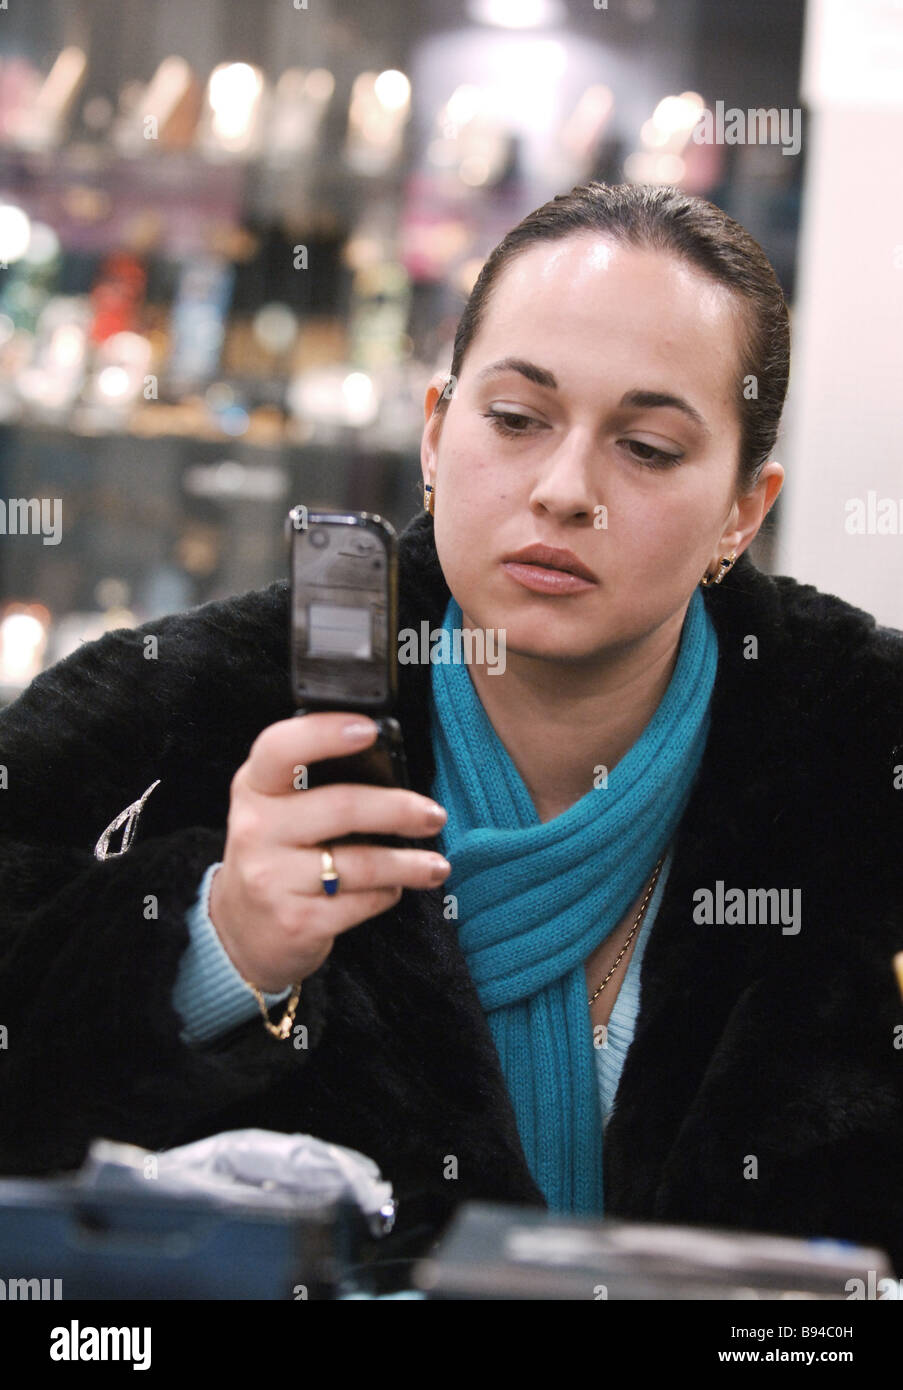 Cellular phones for sale at Euroset retail outlets - Stock Image